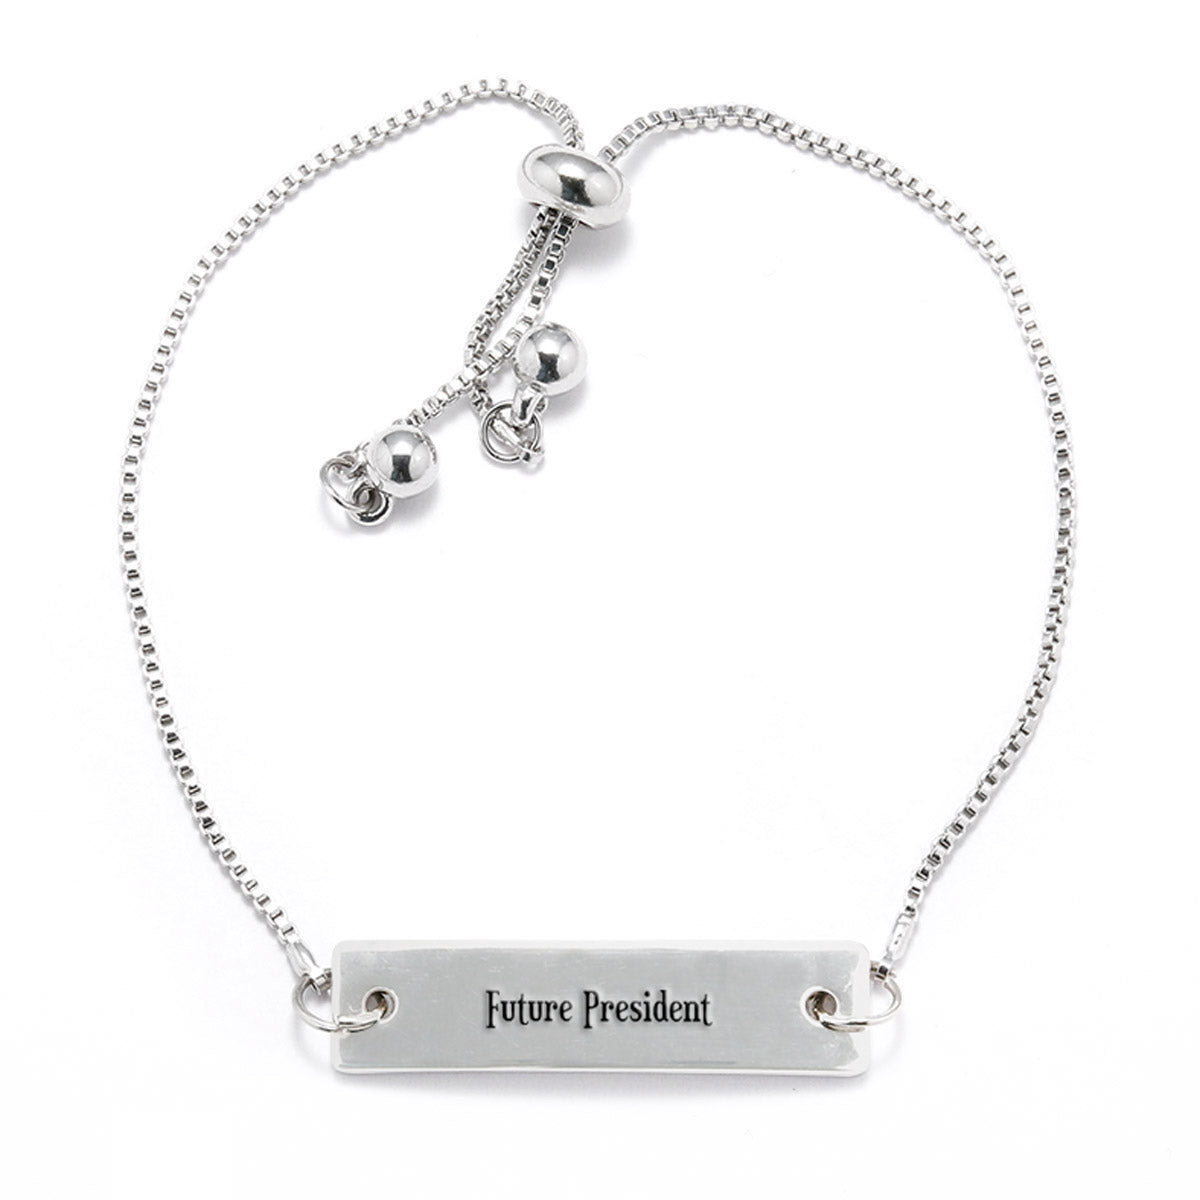 Future President Silver Bar Adjustable Bracelet - pipercleo.com